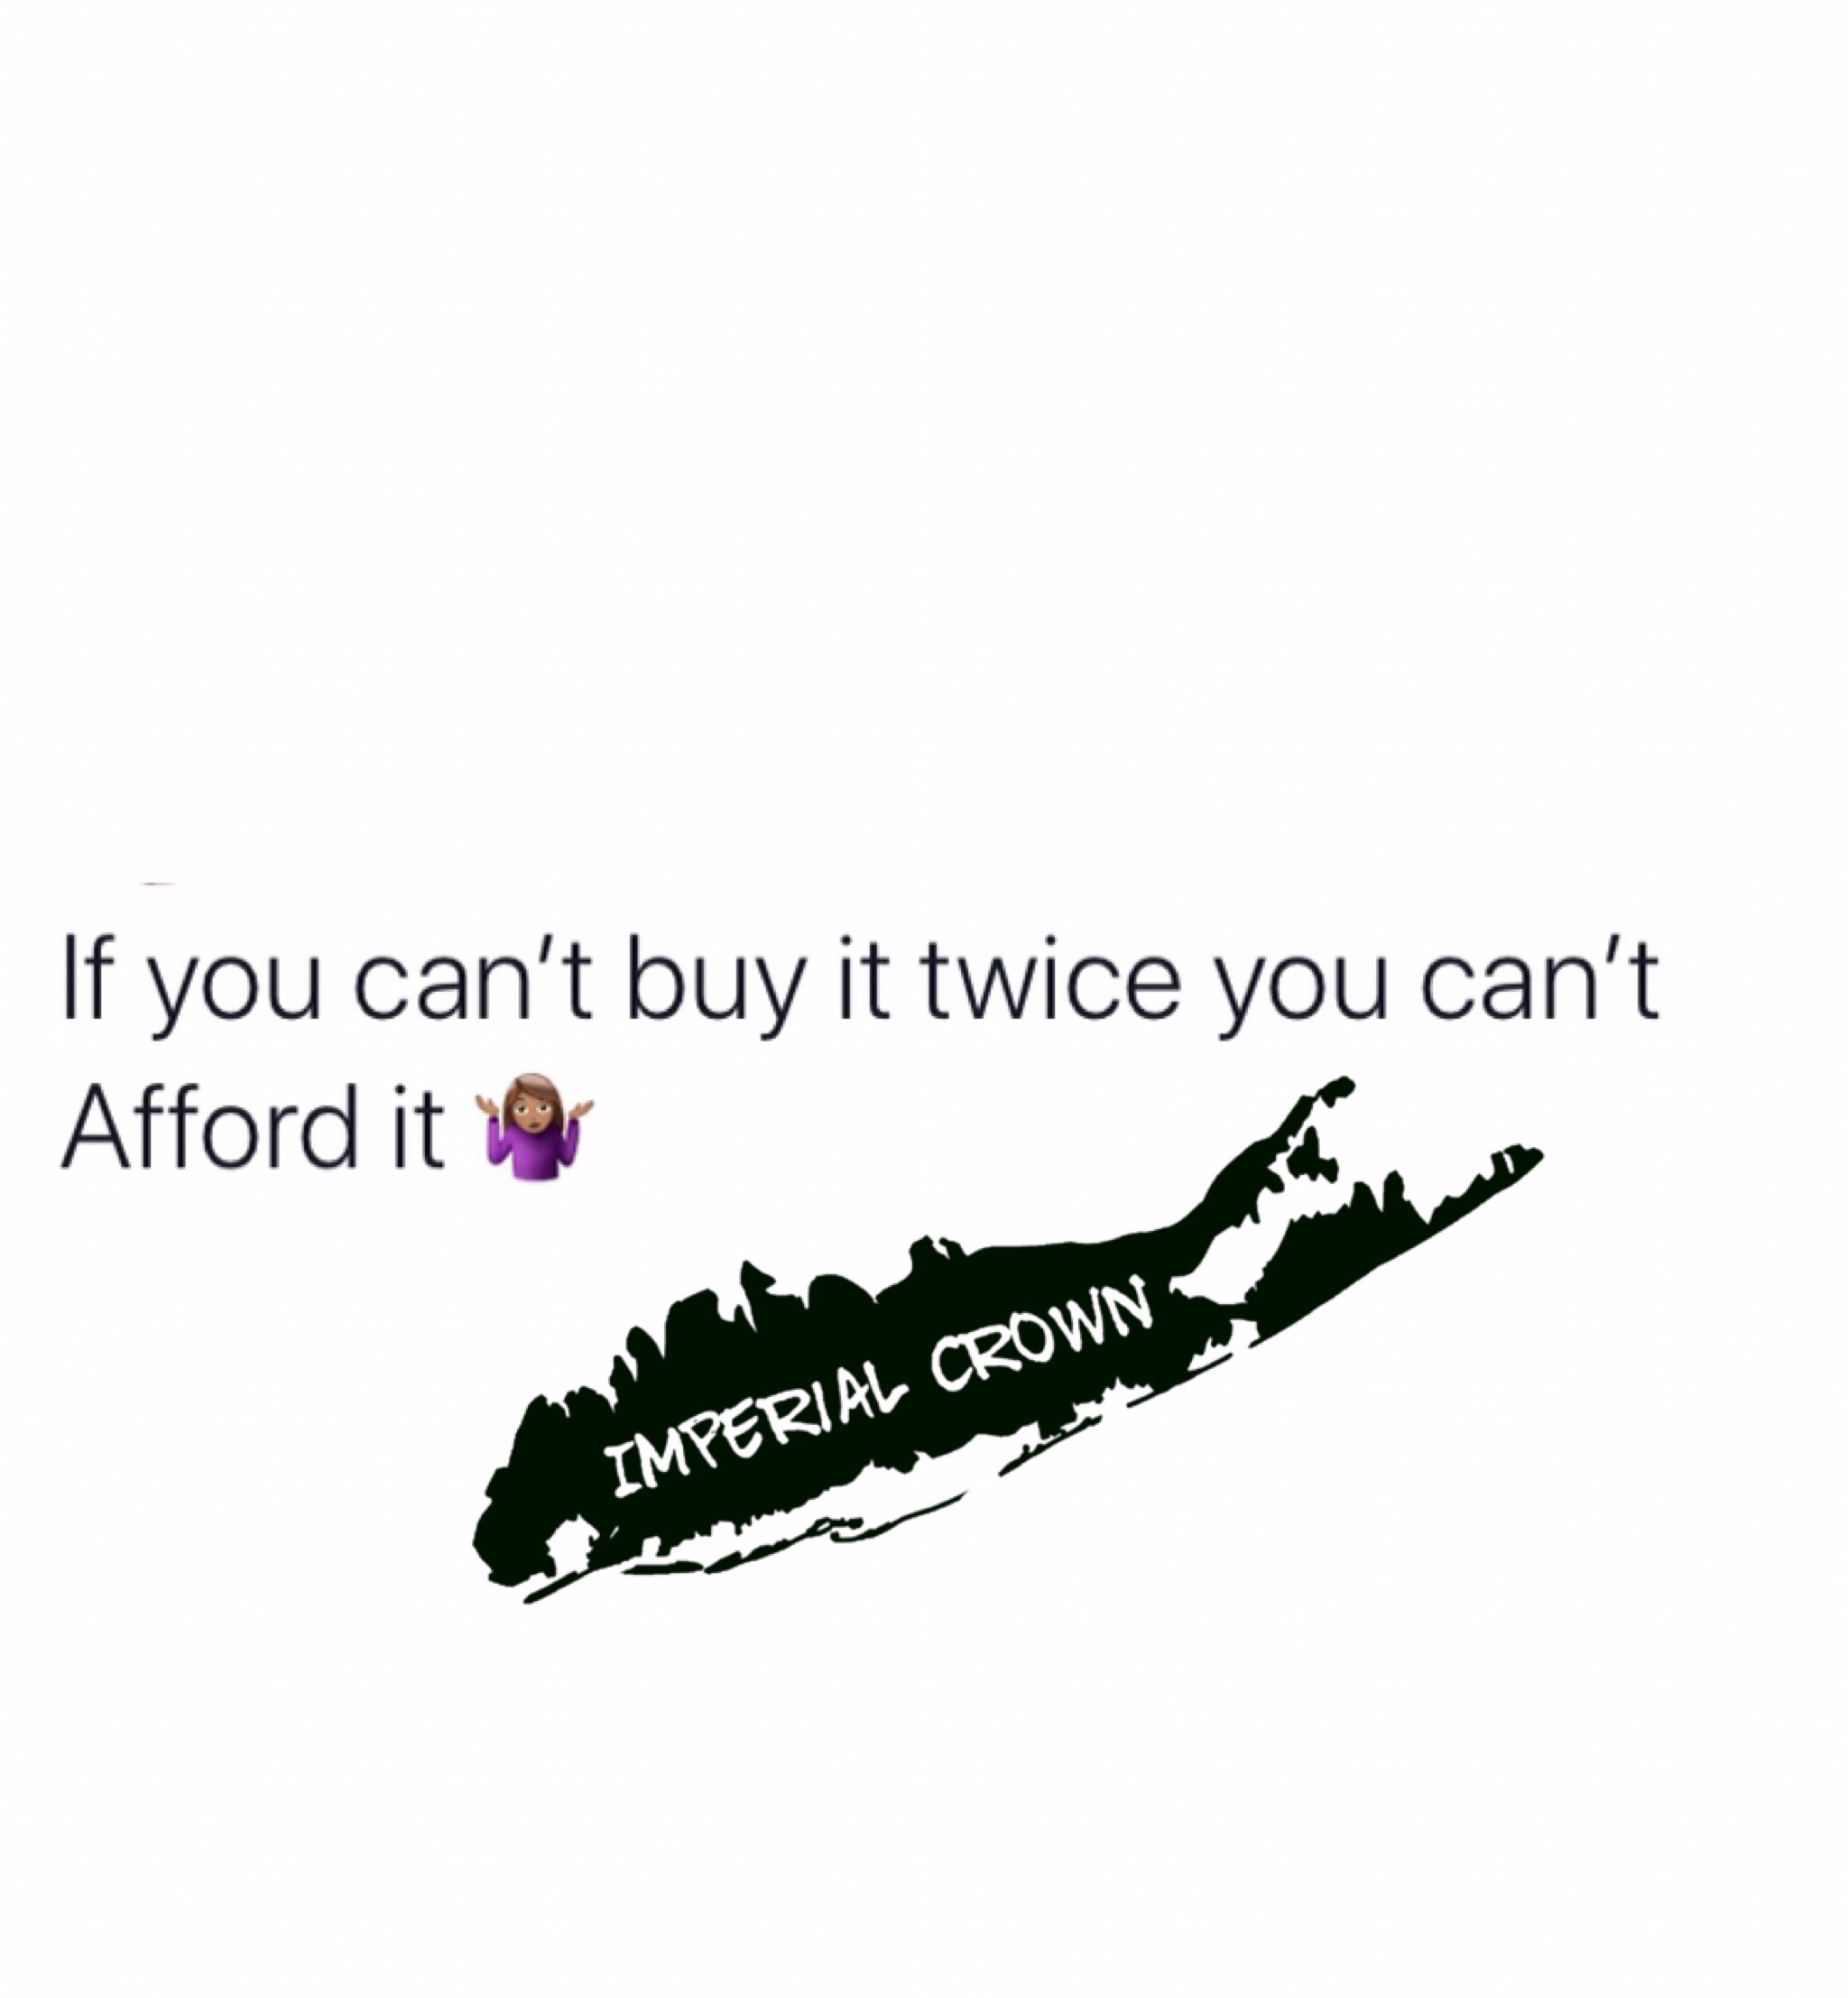 If you can't buy it twice you can't afford it….